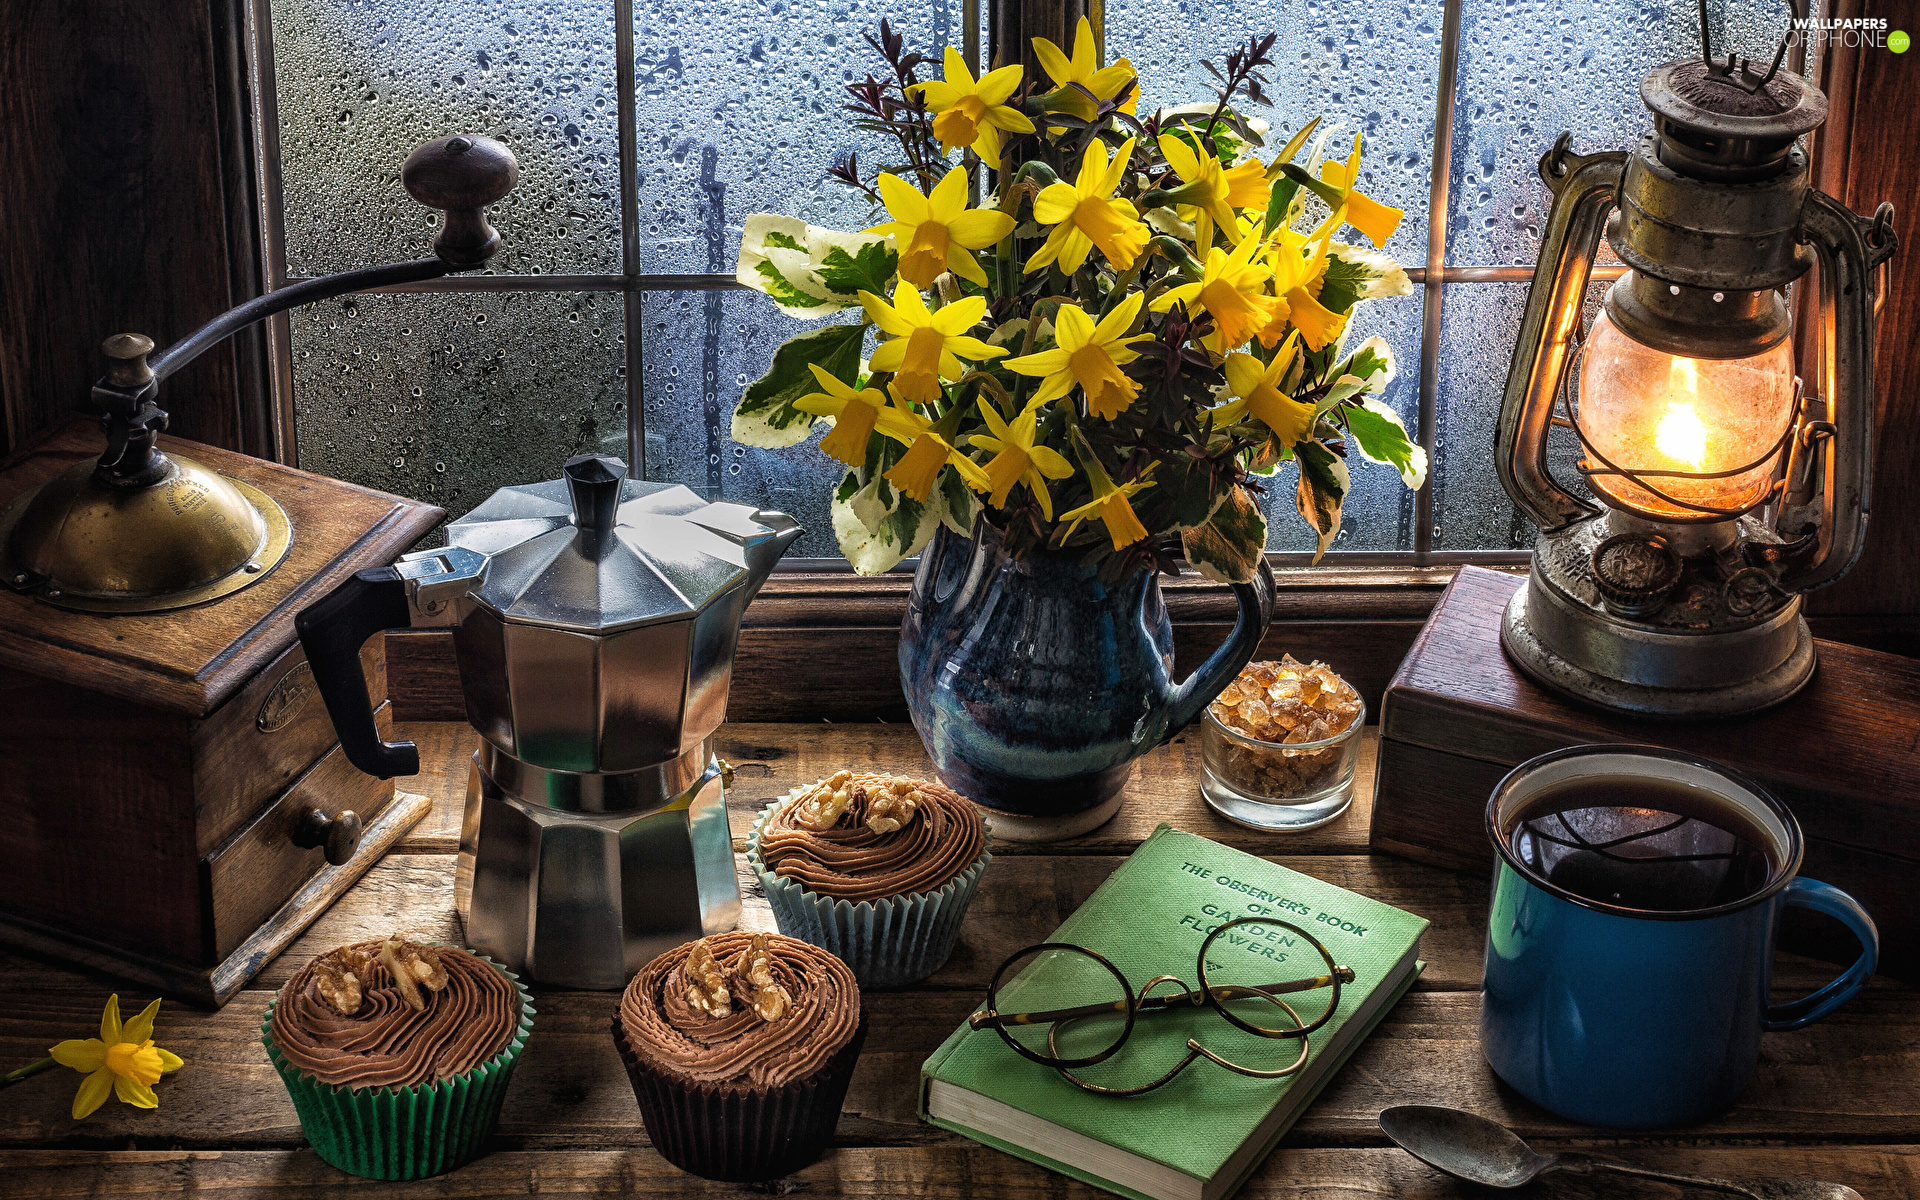 Oil Lamp, Window, mill, Jonquil, composition, Coffee Percolator, Muffins